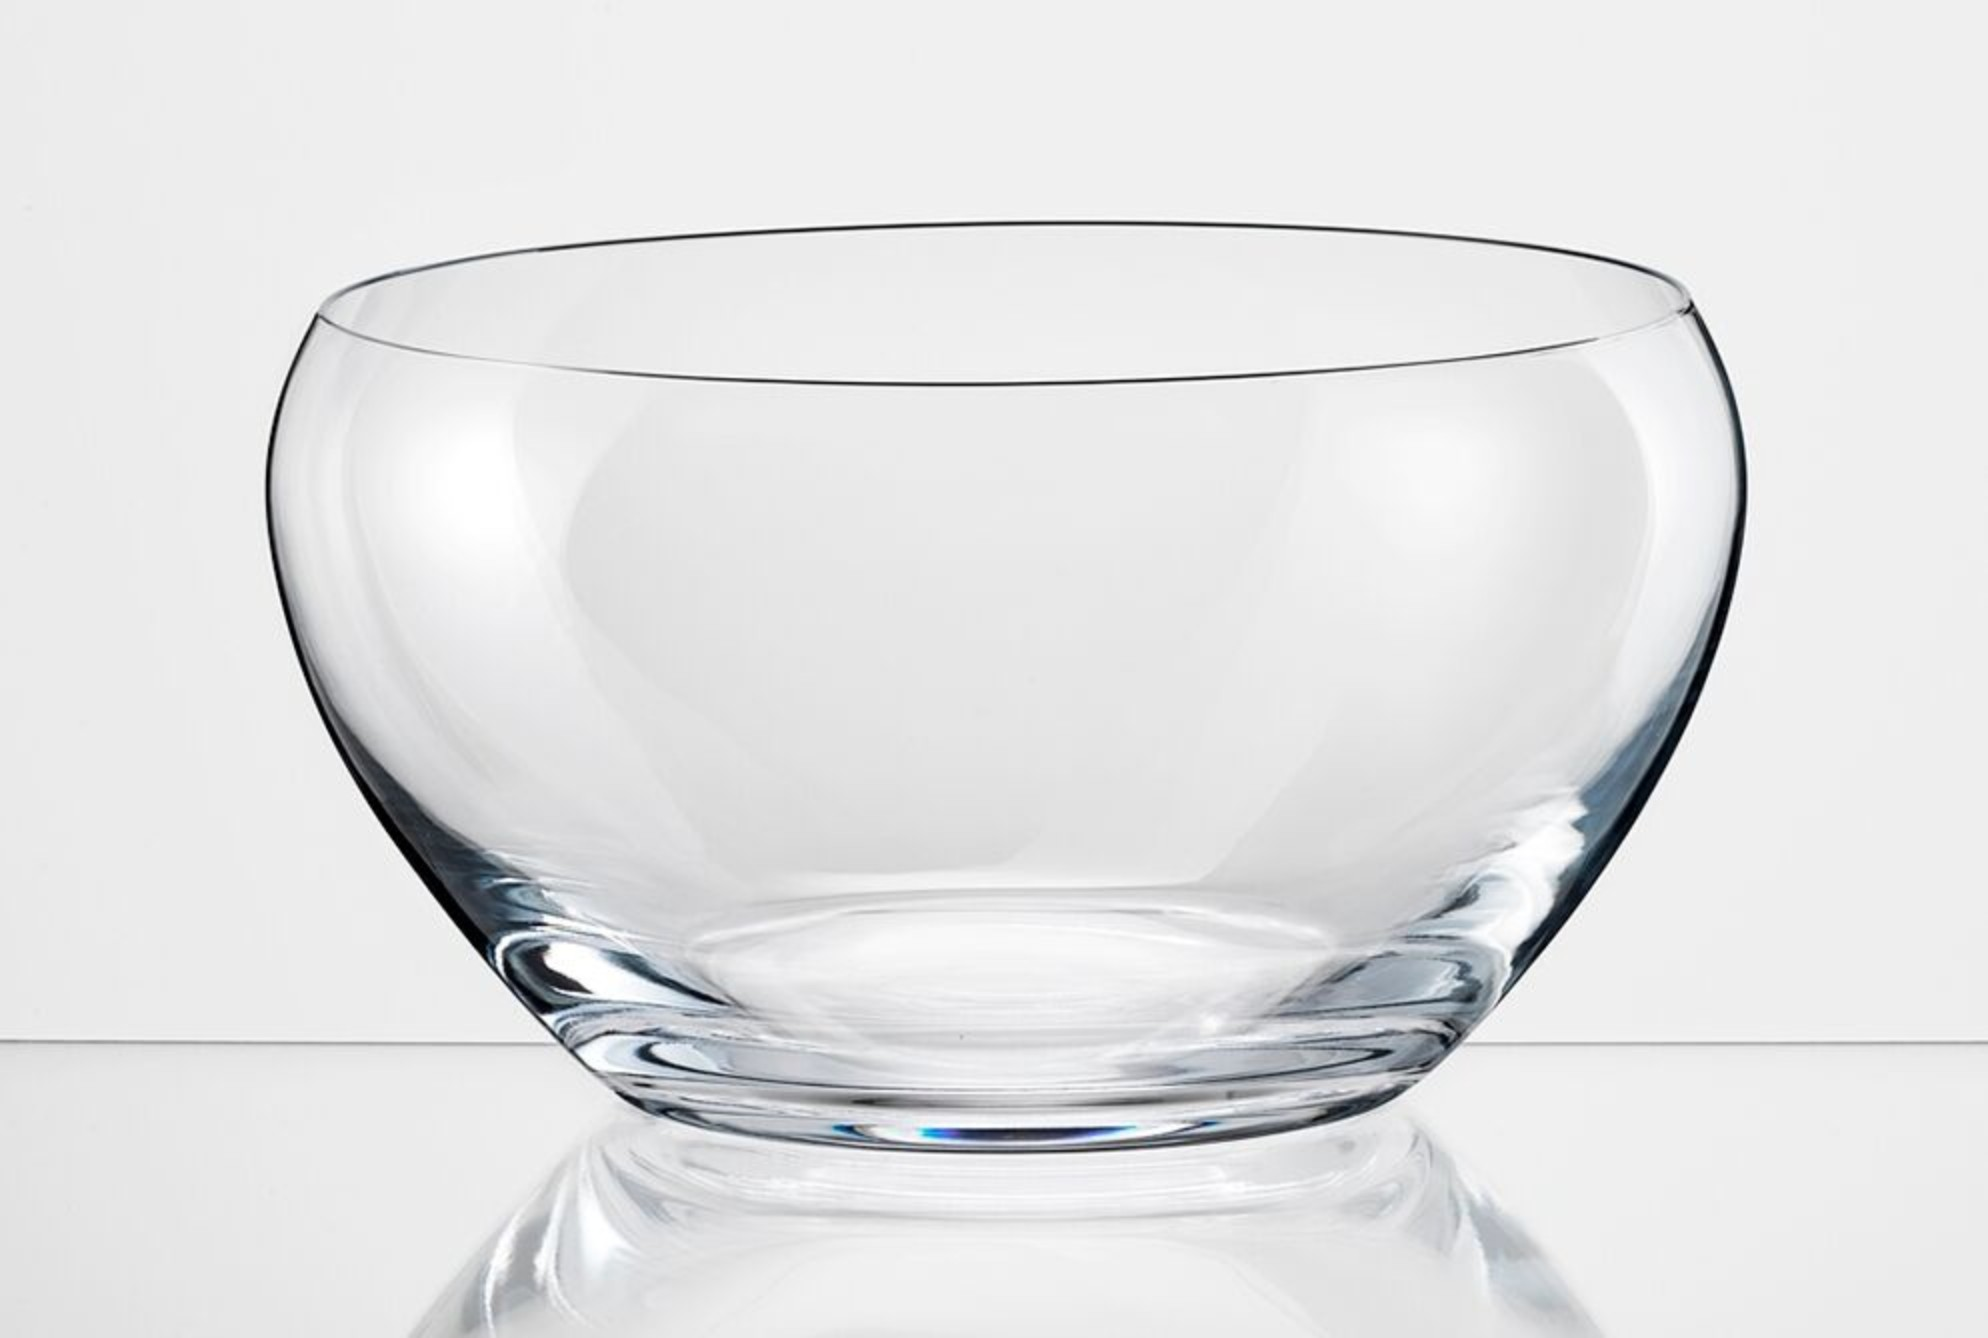 Bohemia Crystal Fruit Bowl 235mm Bar Glassware in Transparent Colour by Bohemia